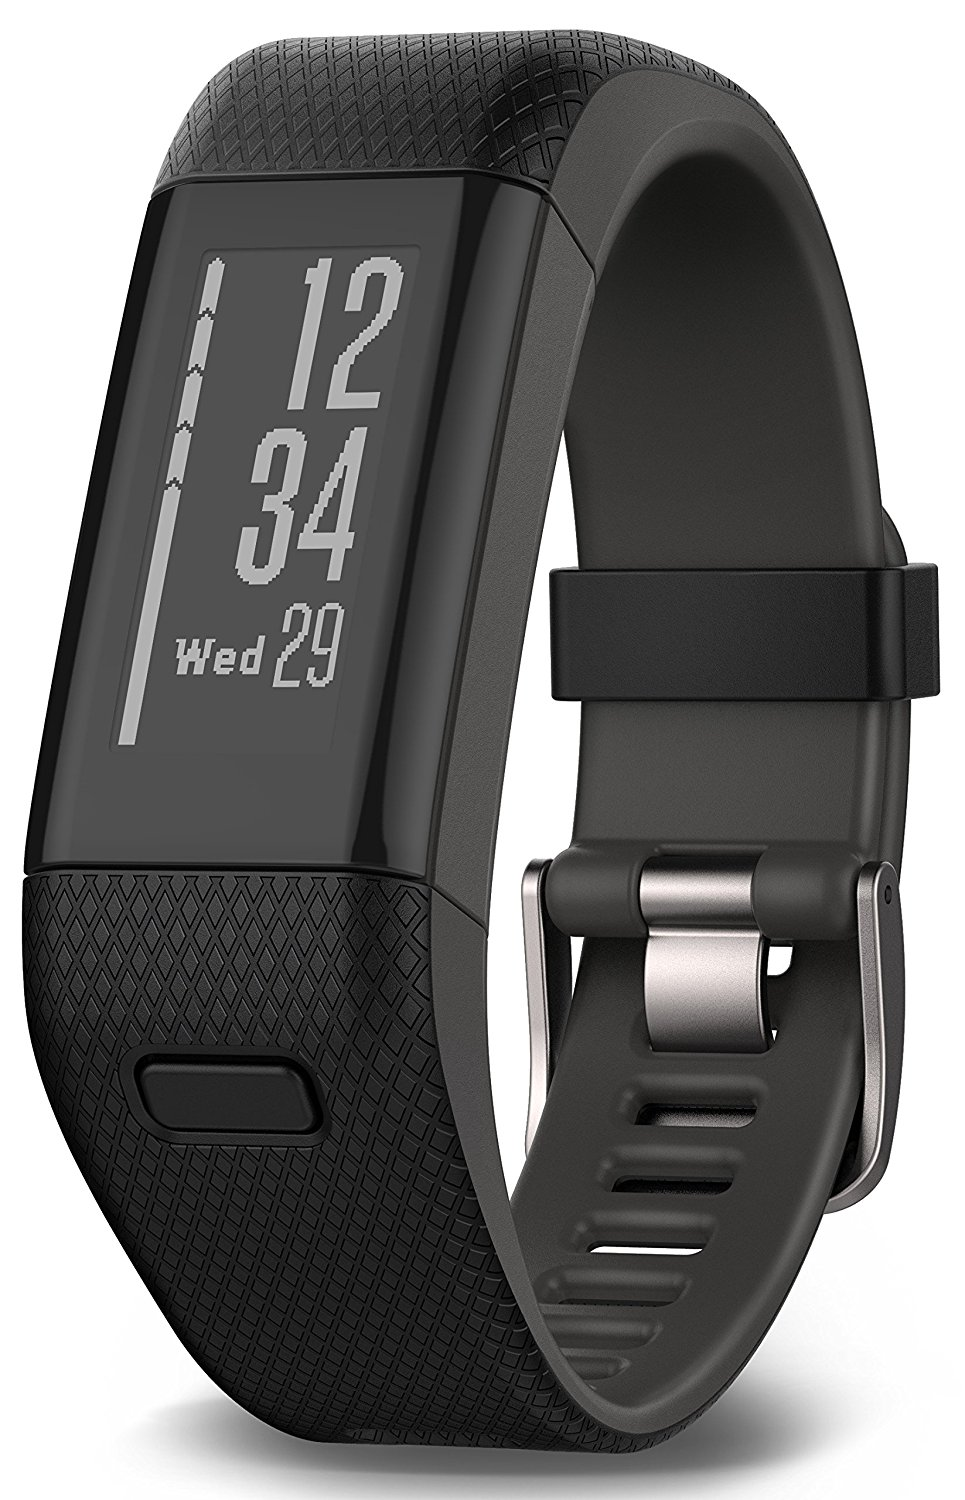 Garmin Vivosmart HR+ Fitness Band GPS con Schermo Touch, Smart Notification e Monitoraggio Cardiaco al Polso